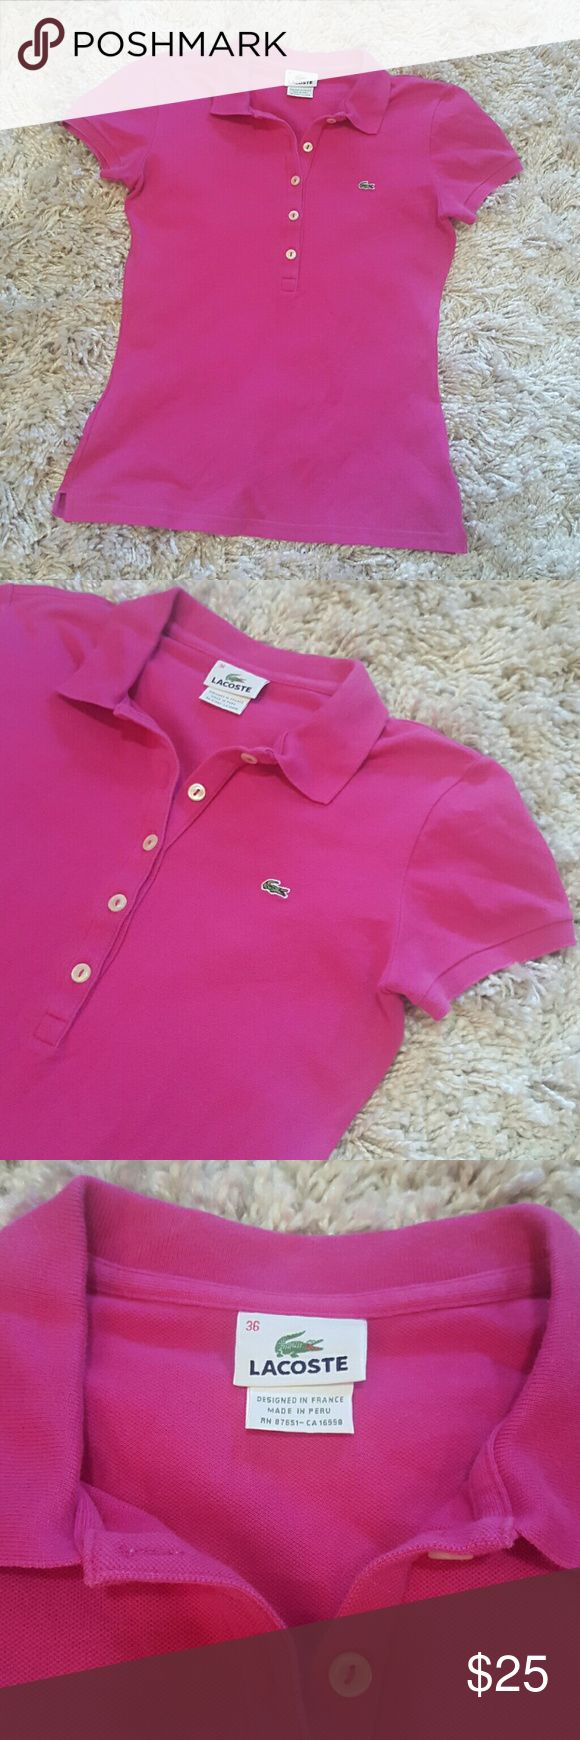 Lacoste Polo Shirt In good condition, no stains or holes. Material listed in photos. Hot pink color. Appears brighter in photo due to lighting. Lacoste Tops